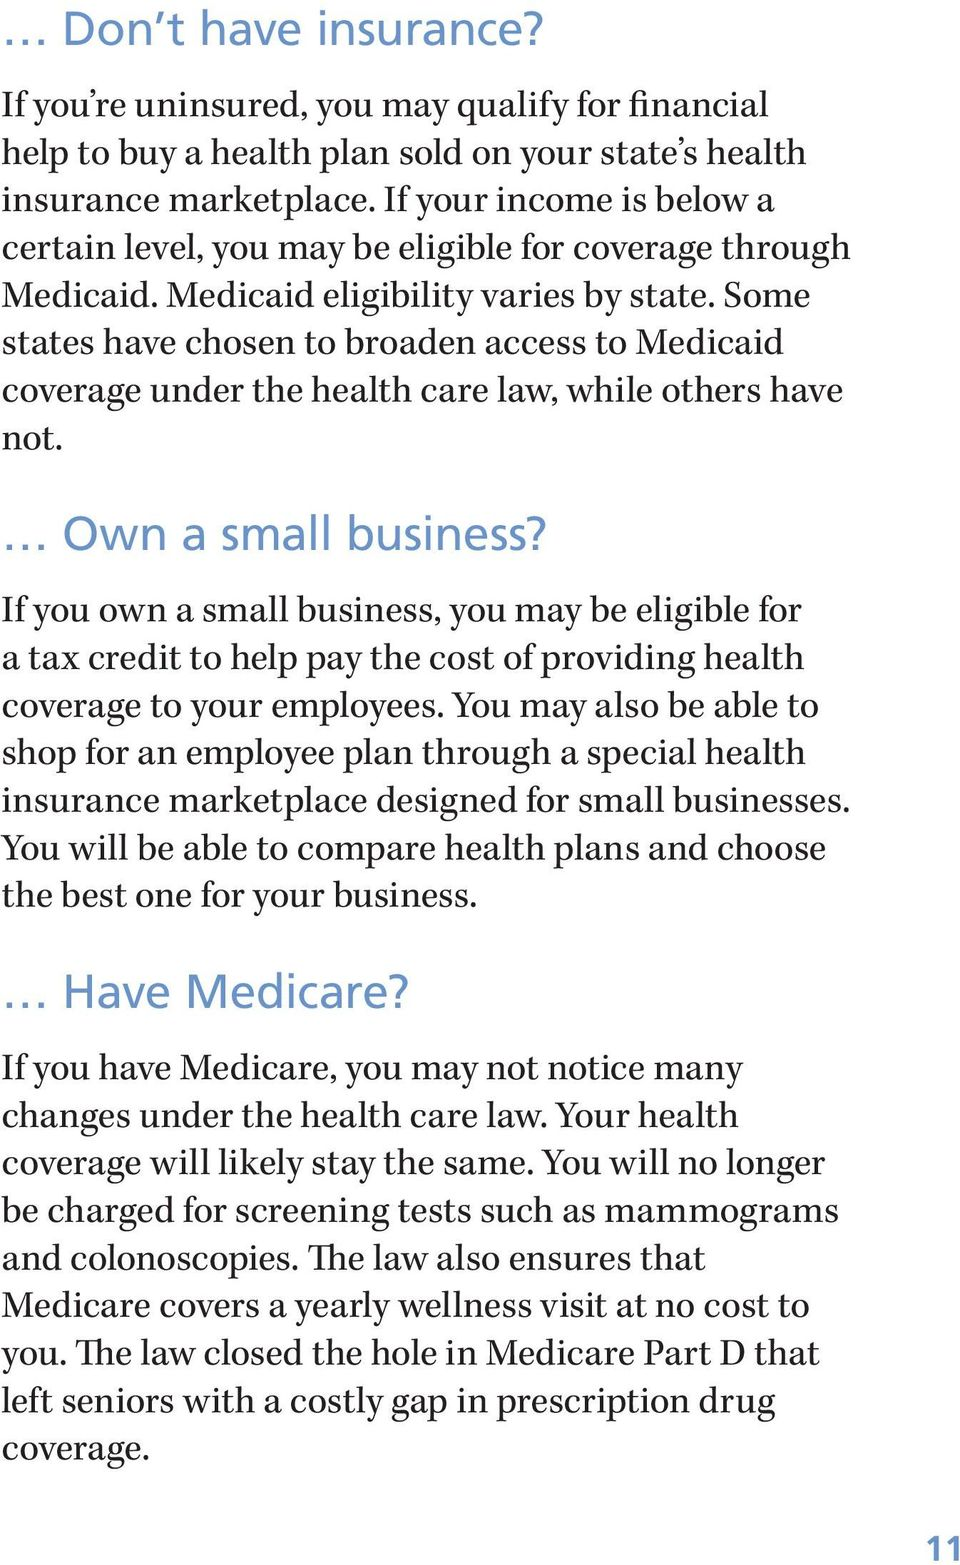 Some states have chosen to broaden access to Medicaid coverage under the health care law, while others have not. Own a small business?